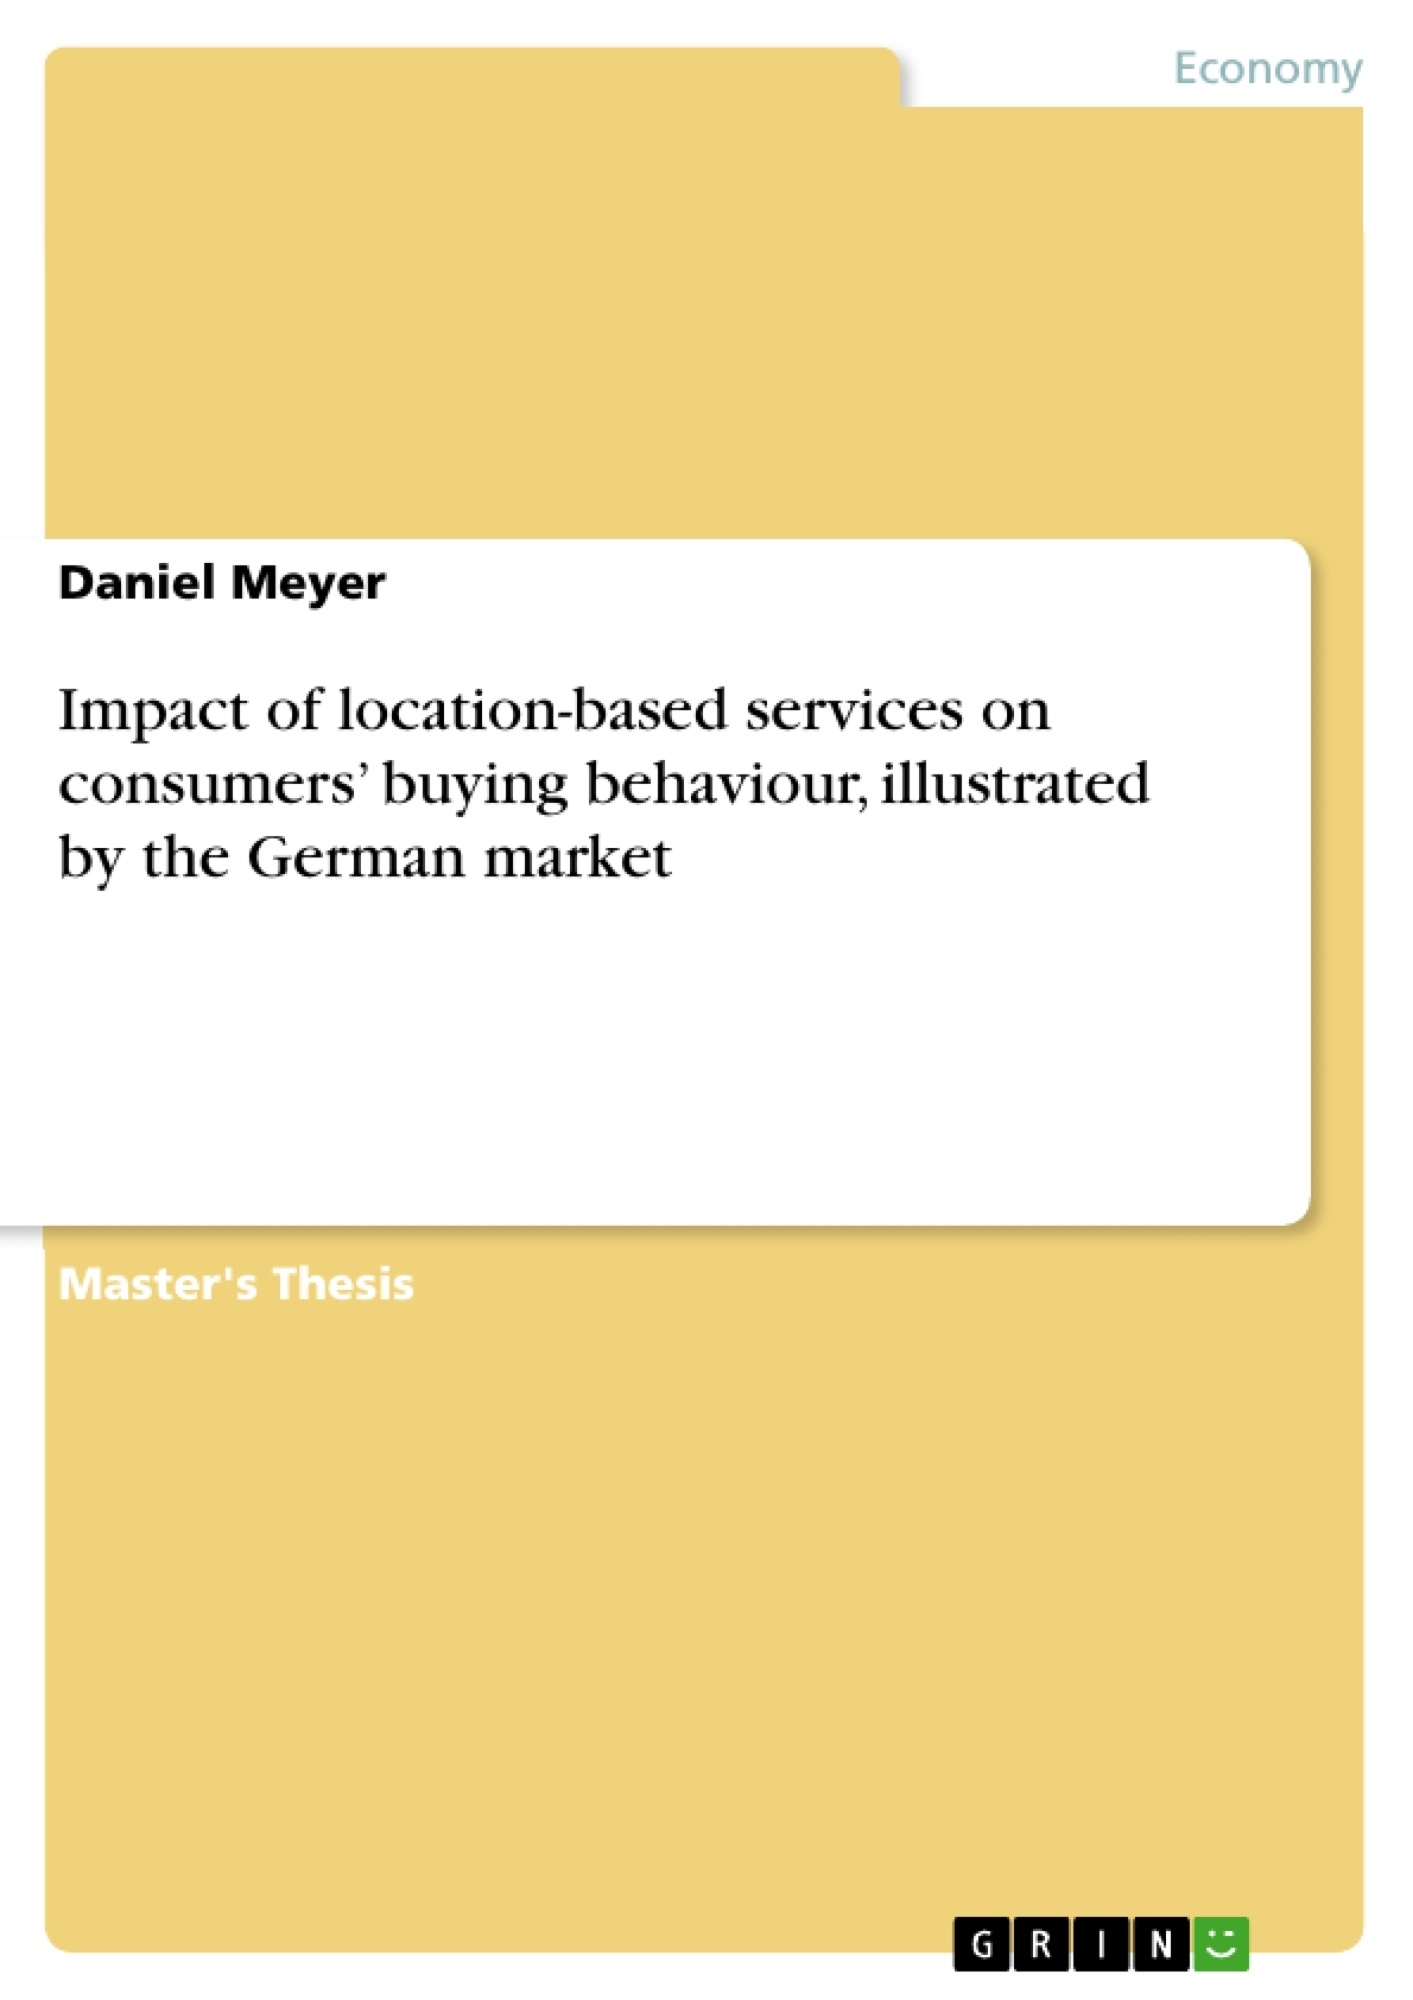 Title: Impact of location-based services on consumers' buying behaviour, illustrated by the German market